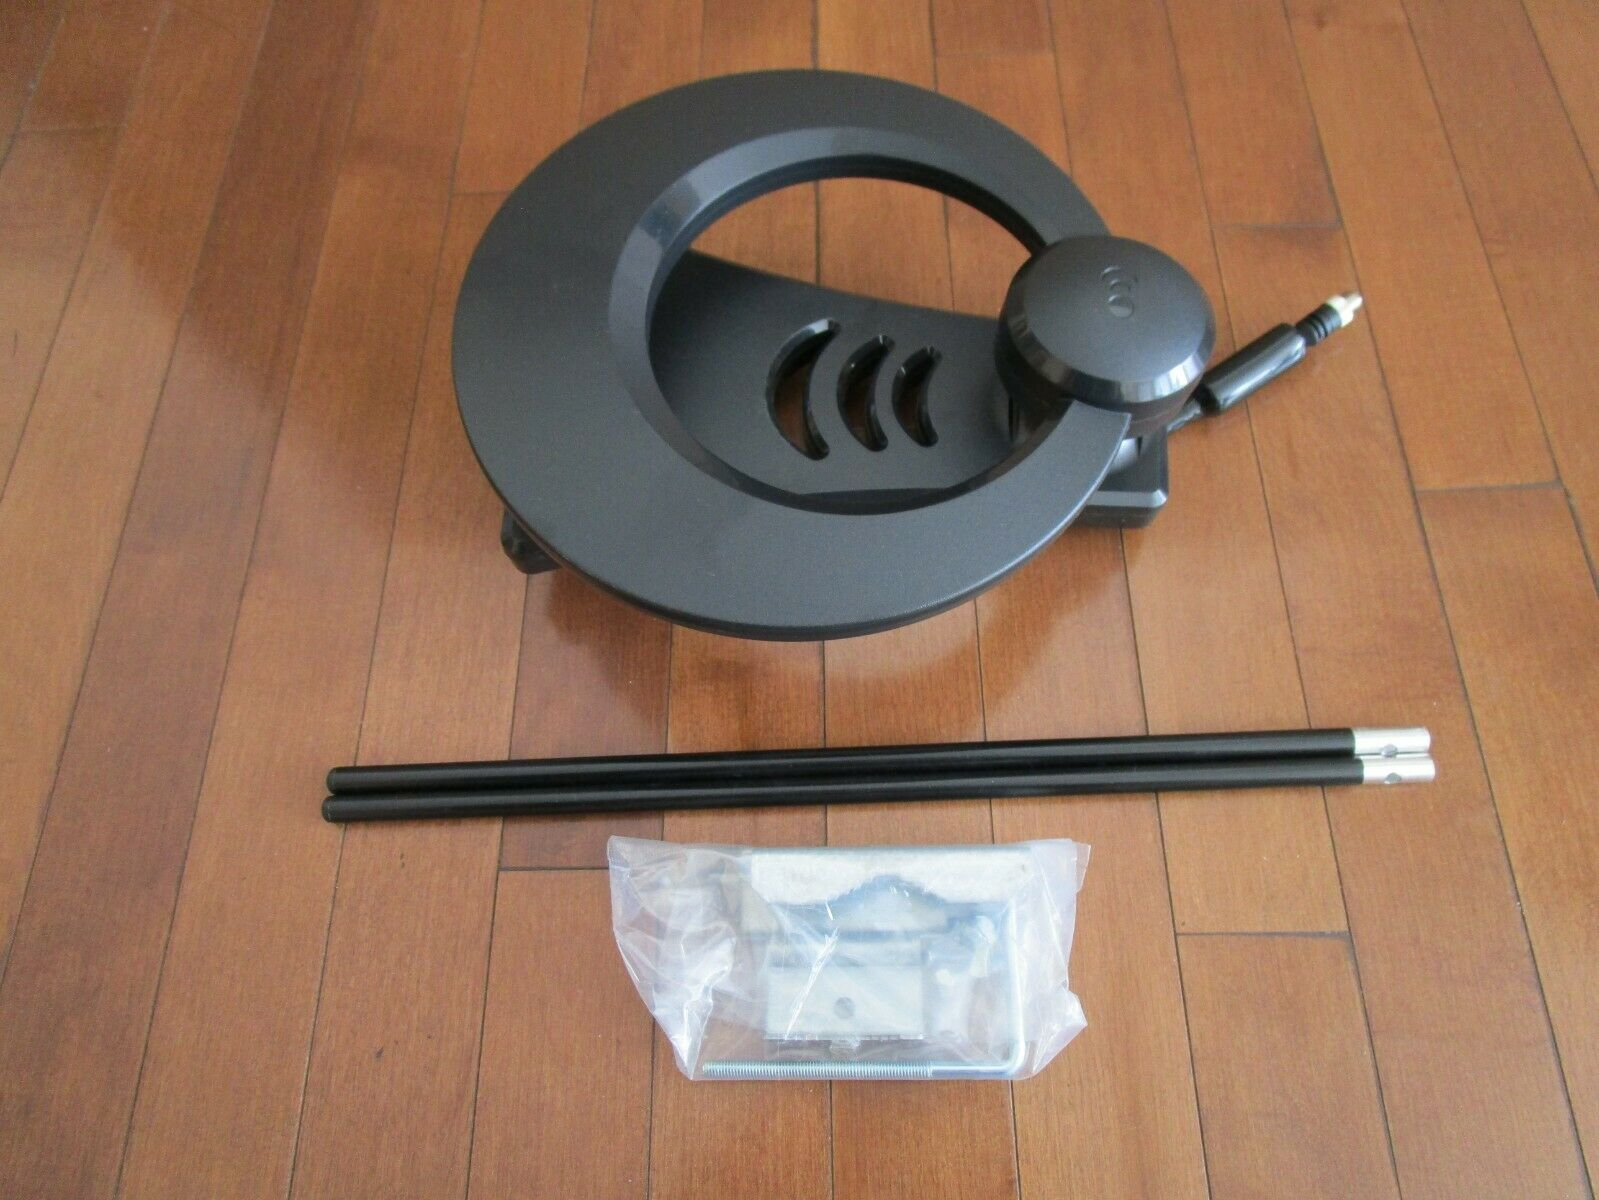 Antennas Direct ClearStream 1MAX Indoor/Outdoor Multidirectional TV Antenna. Available Now for 23.00